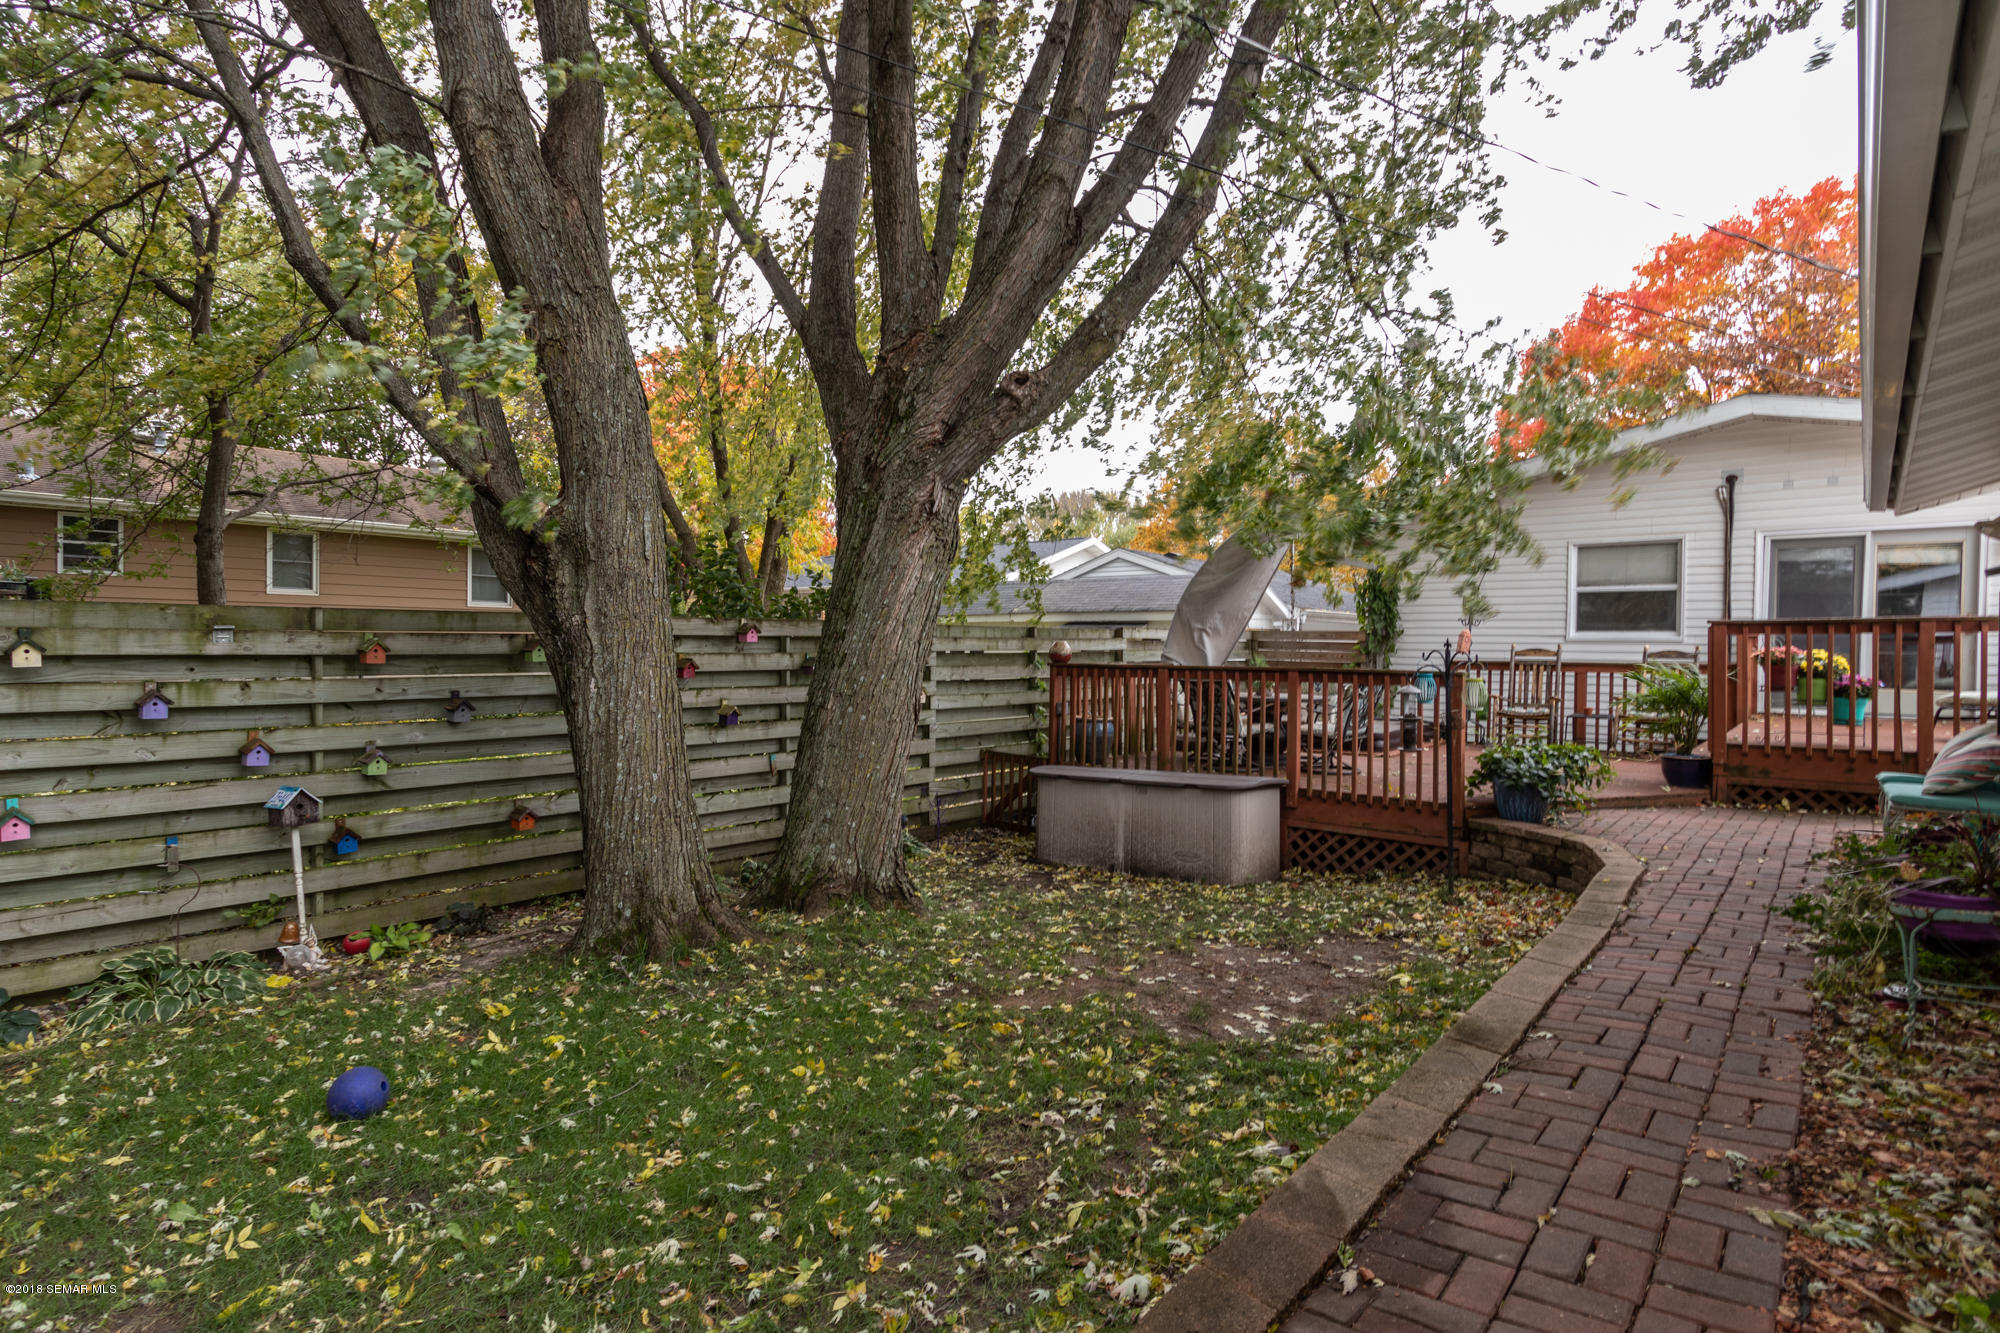 1632 5th,Rochester,Minnesota 55906,4 Bedrooms Bedrooms,2 BathroomsBathrooms,Single family residence,5th,4091922